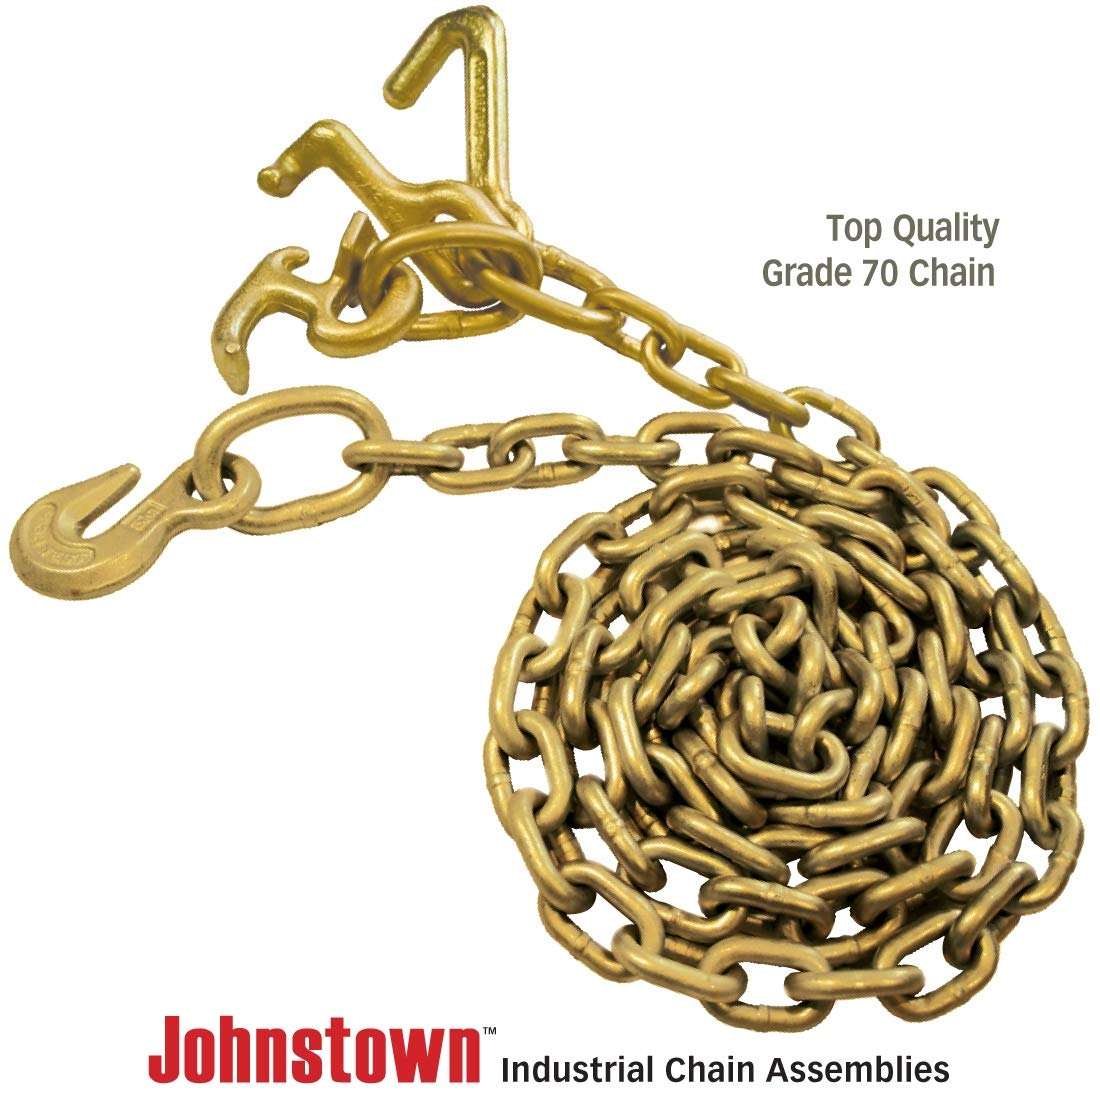 SWL Johnstown Grade 70 Tow Chain Universal RTJ Cluster 8 4700 lbs